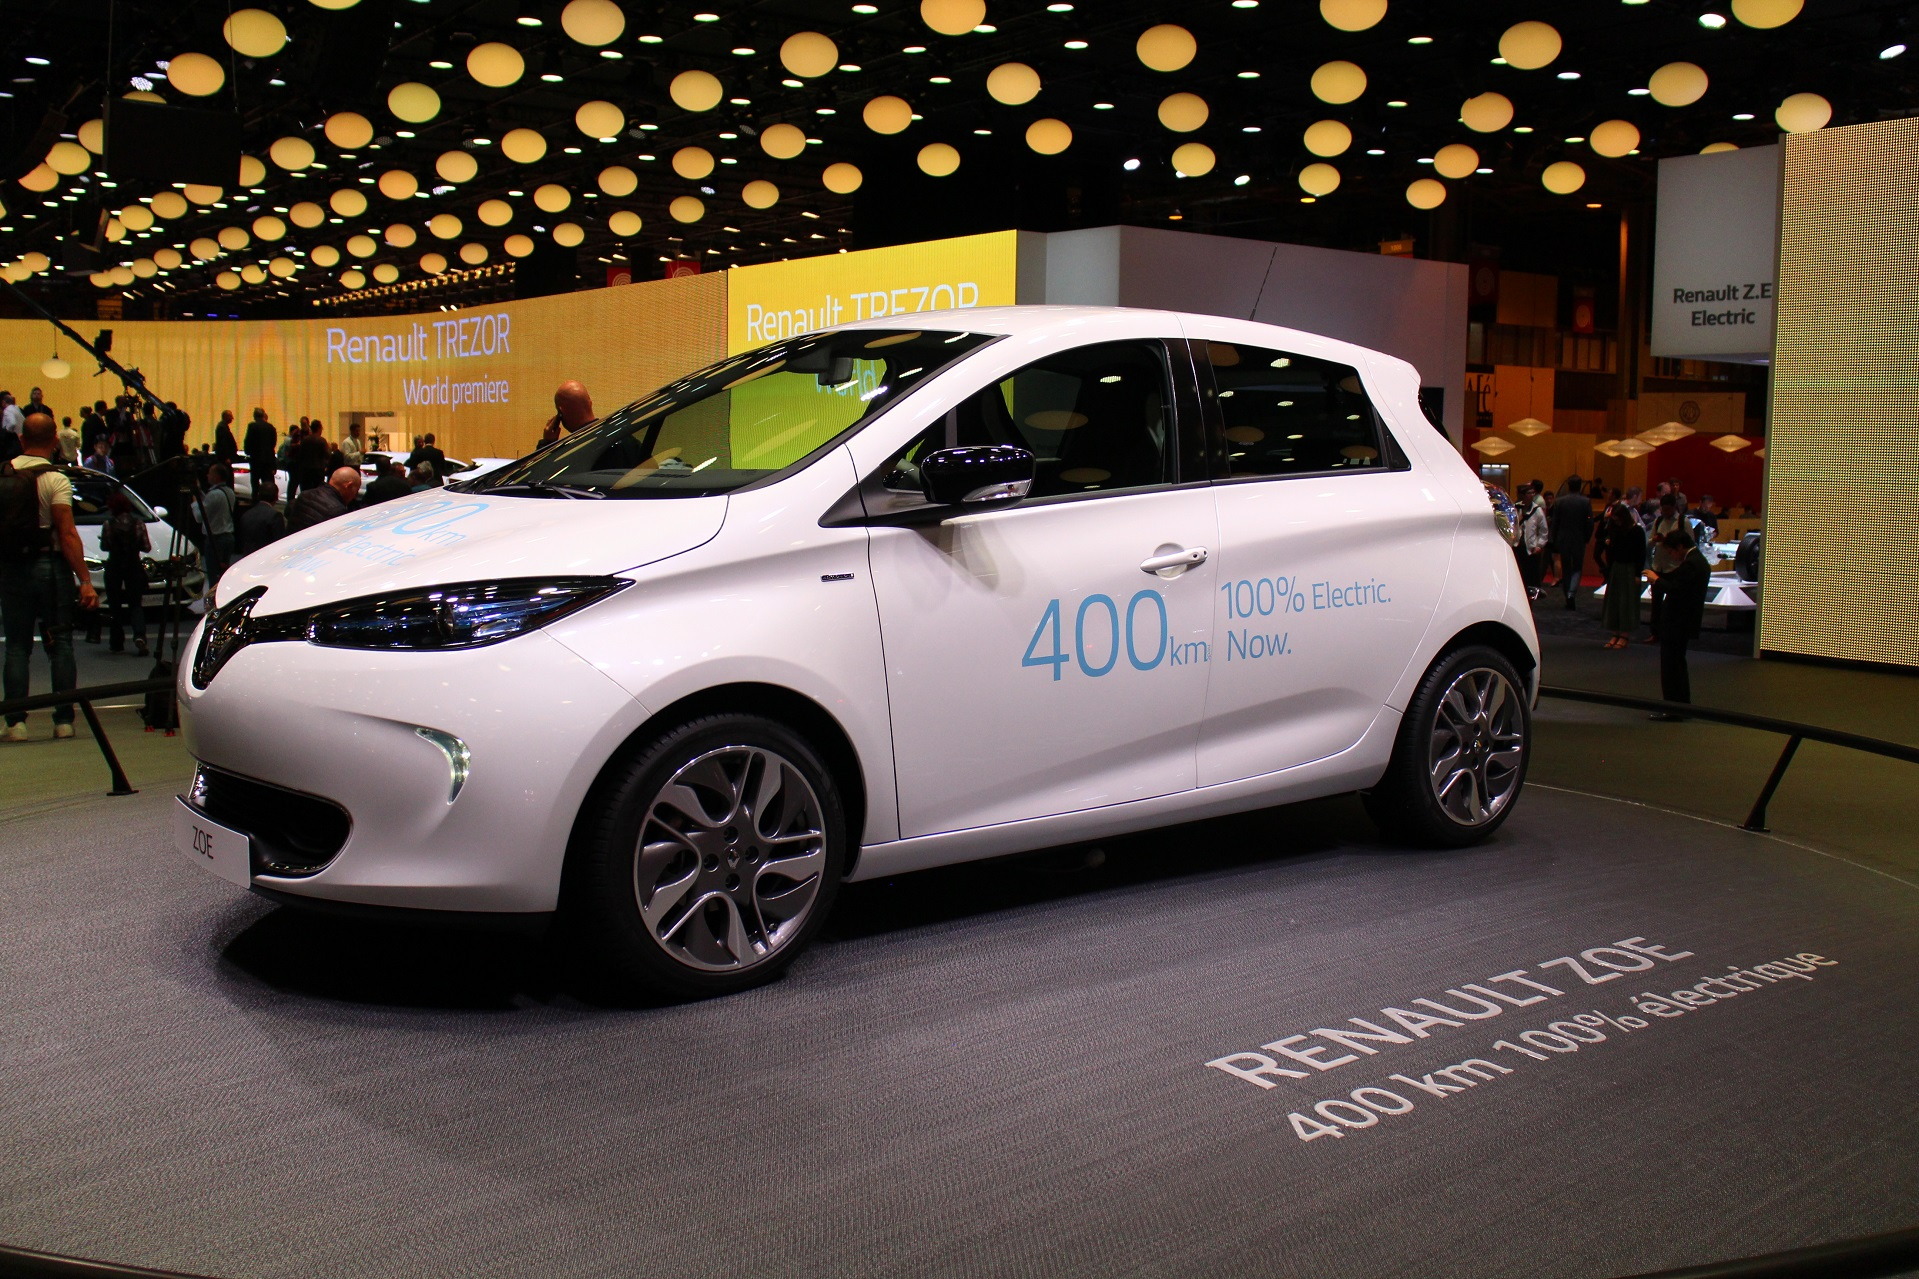 2018 renault zoe. delighful zoe renault zoe electriccar owners can double their range by upgrading leased  batteries in 2018 renault zoe